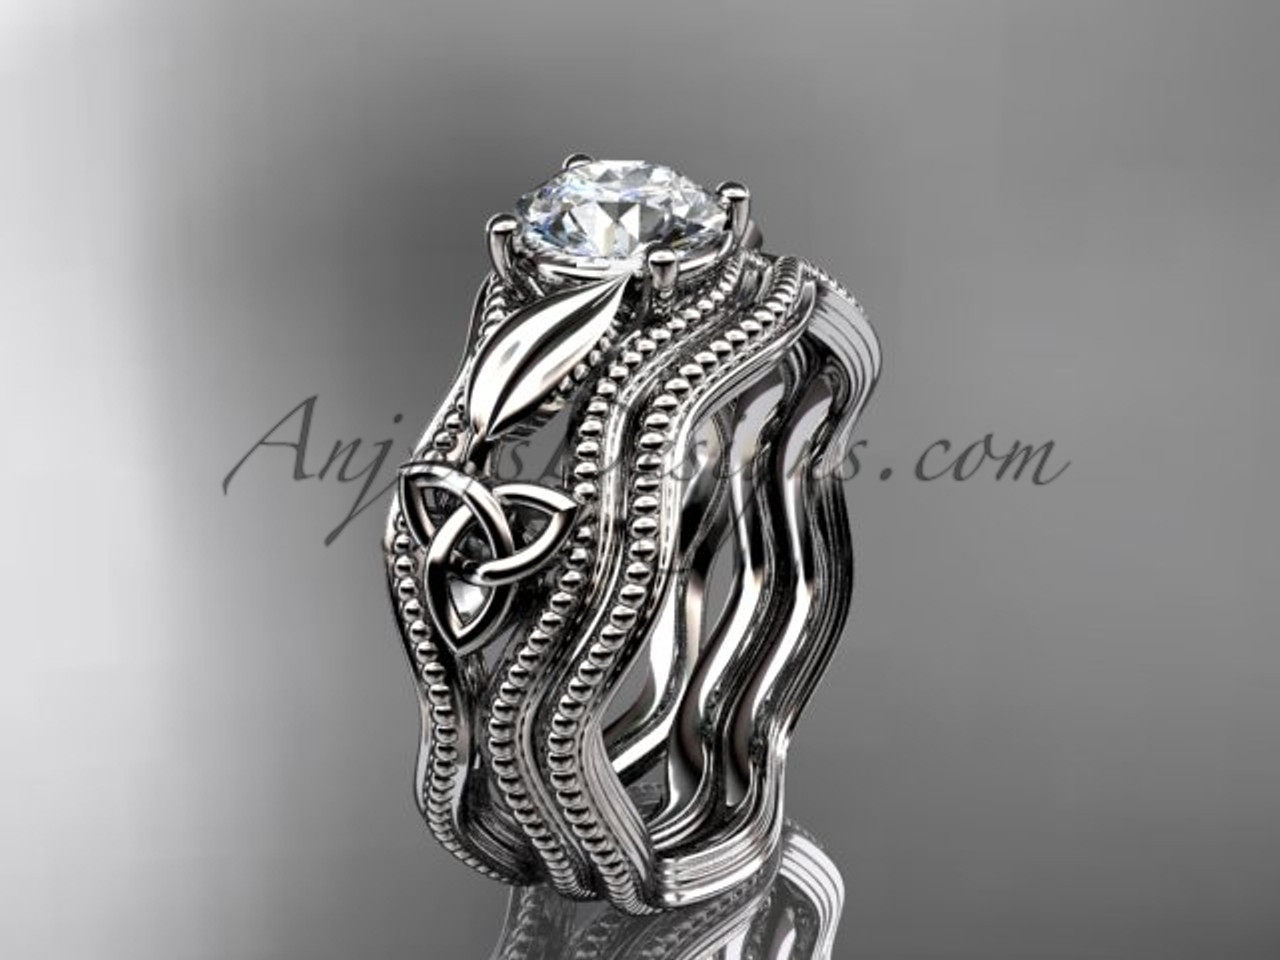 Alternative Wedding Rings.Celtic Trinity Knot Engagement Ring 14kt White Gold Wedding Set Ct7382s